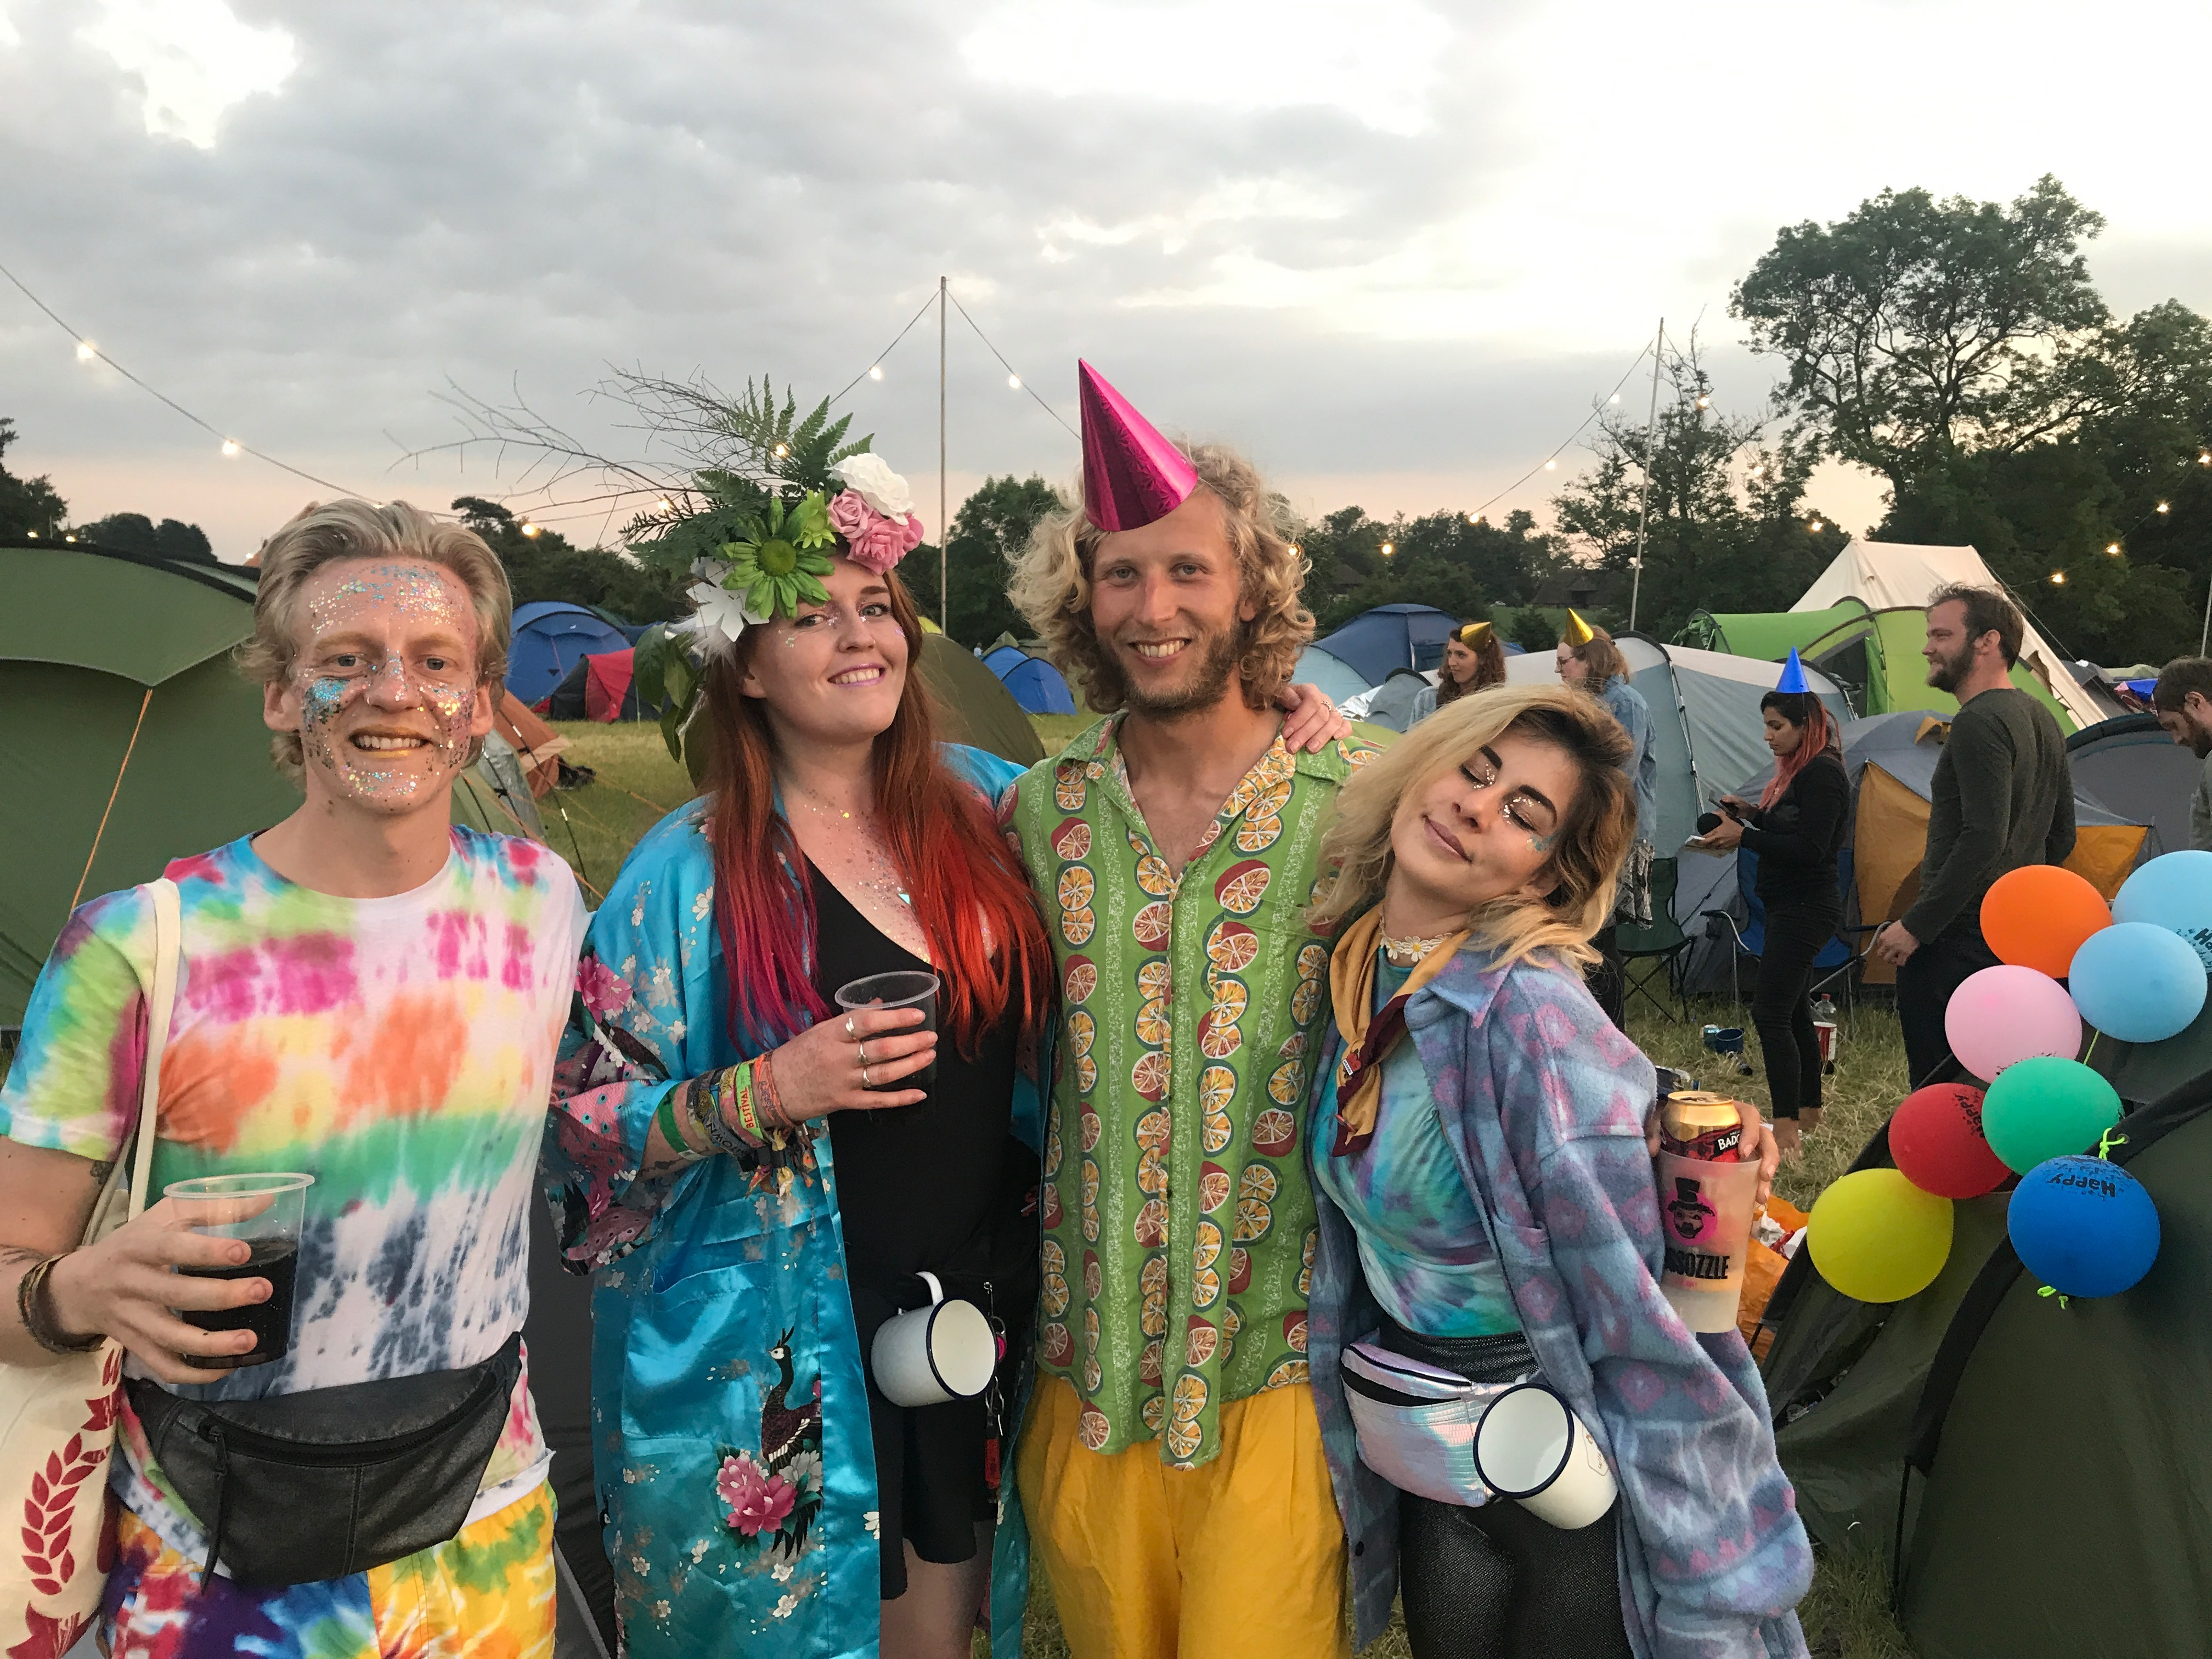 The gang looking super festival in tie dye, natural headpieces, glitter, party hats and with our Wildfire mugs attached to our belts.